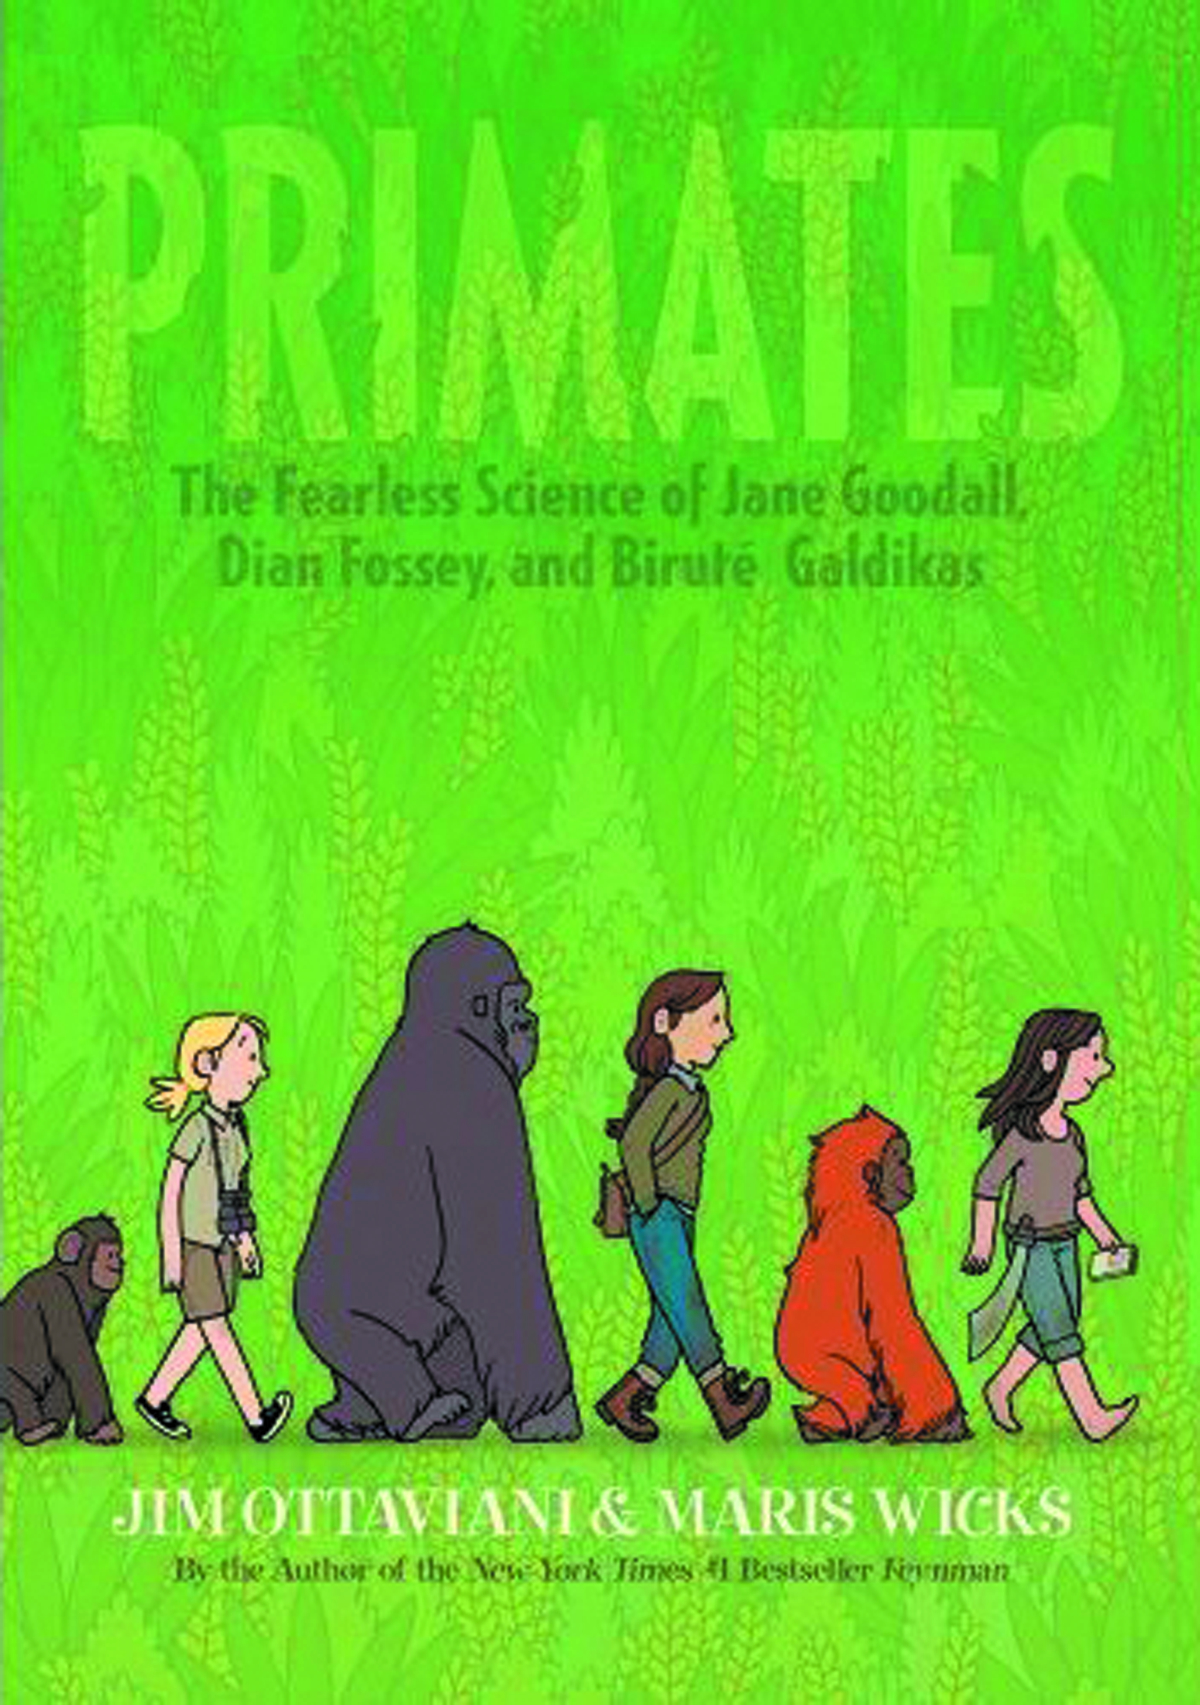 PRIMATES FEARLESS SCIENCE OF GOODALL FOSSEY & GALDIKAS HC